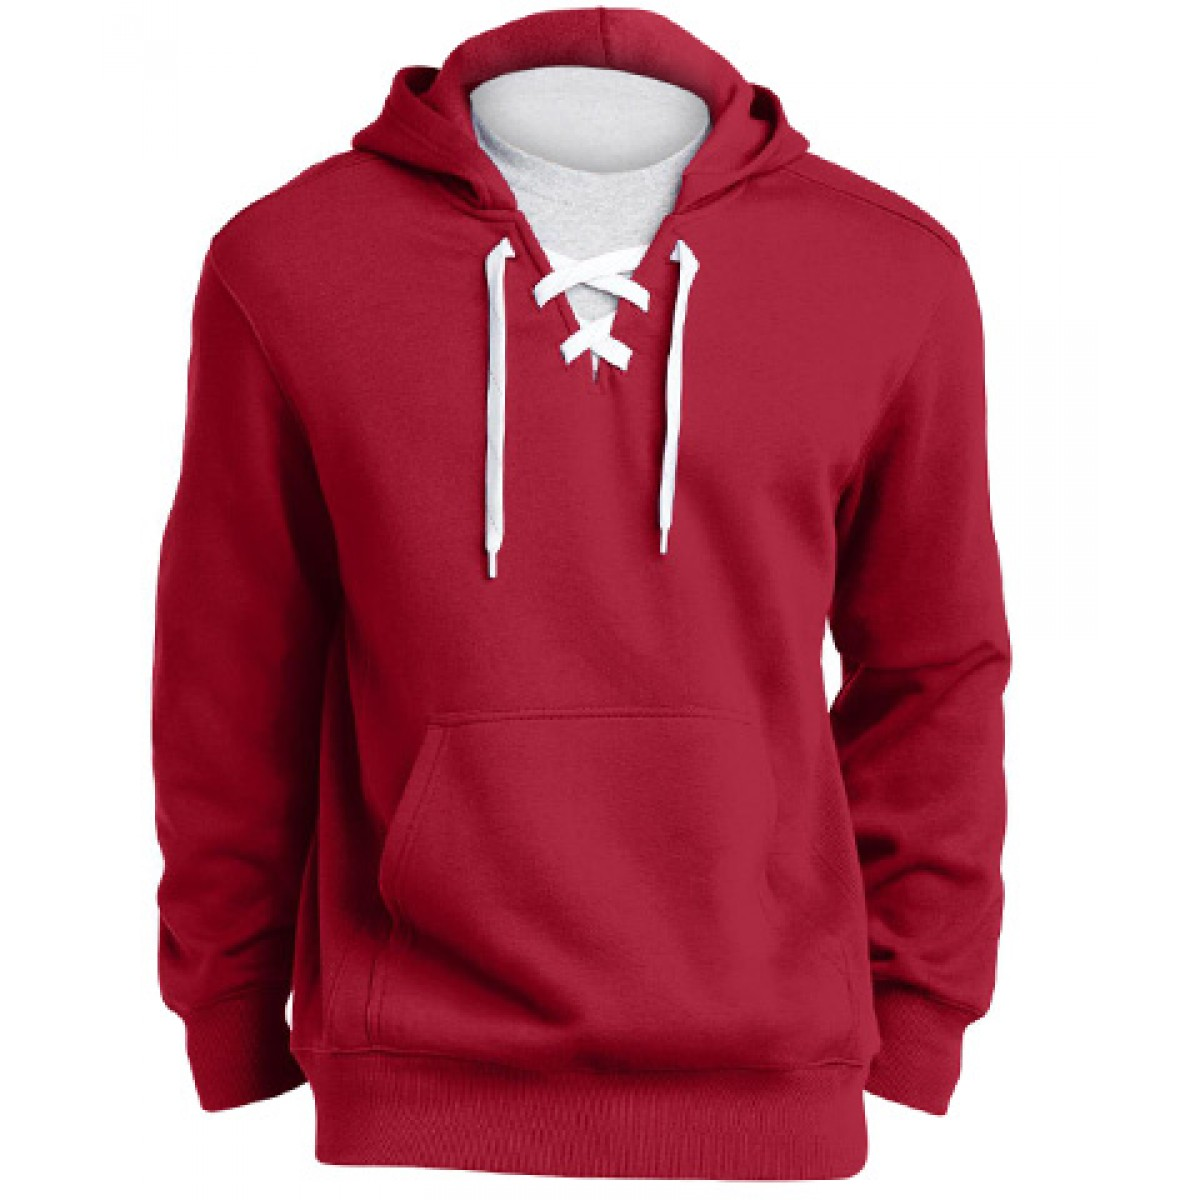 Lace Up Pullover Hooded Sweatshirt-Red-2XL